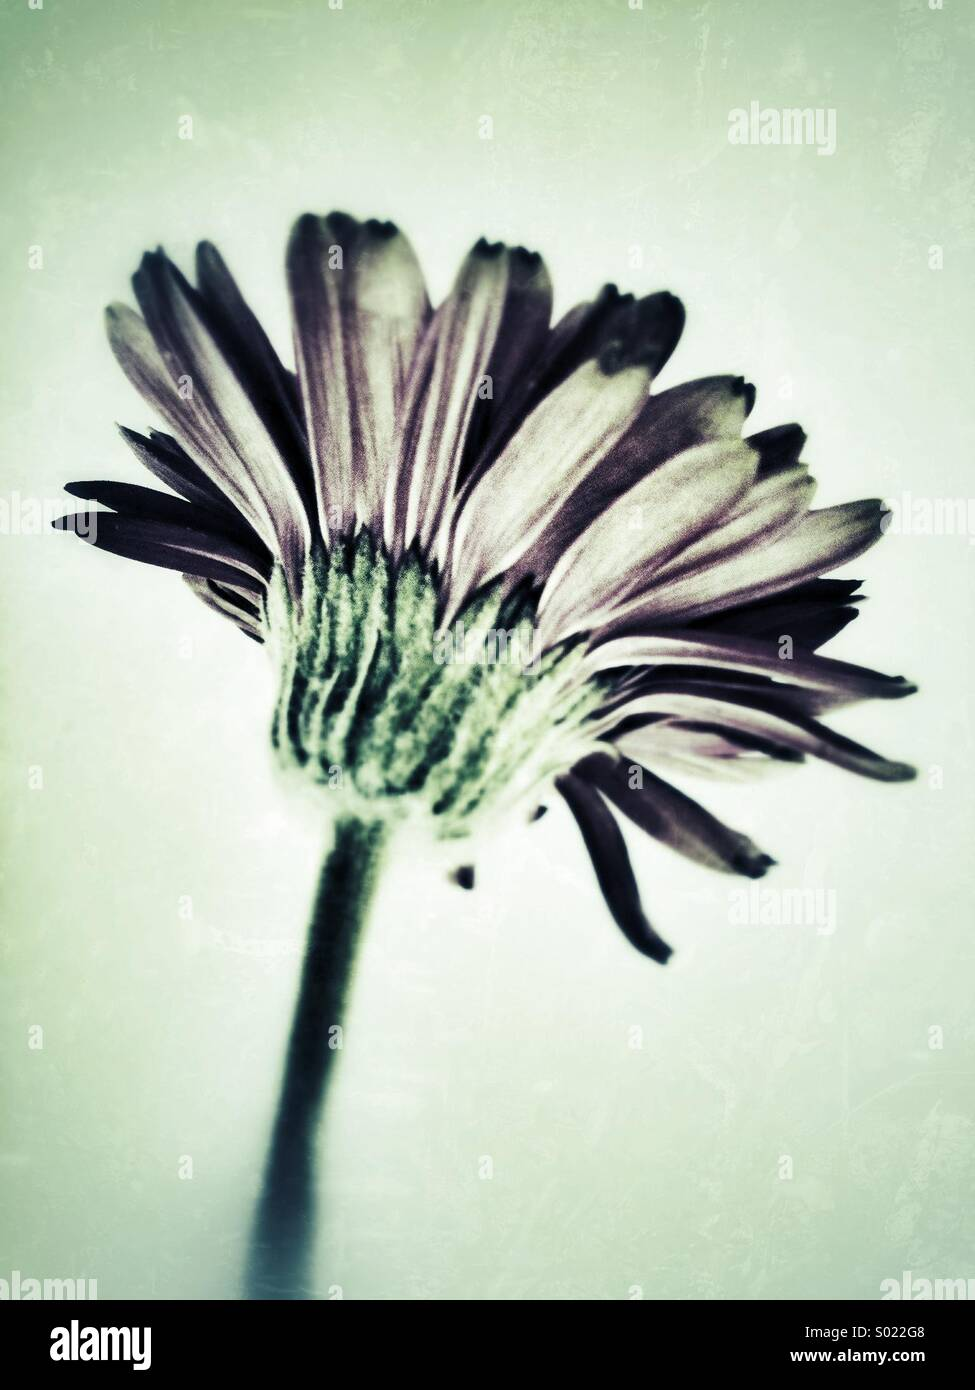 Gerbera flower with grunge effect. - Stock Image